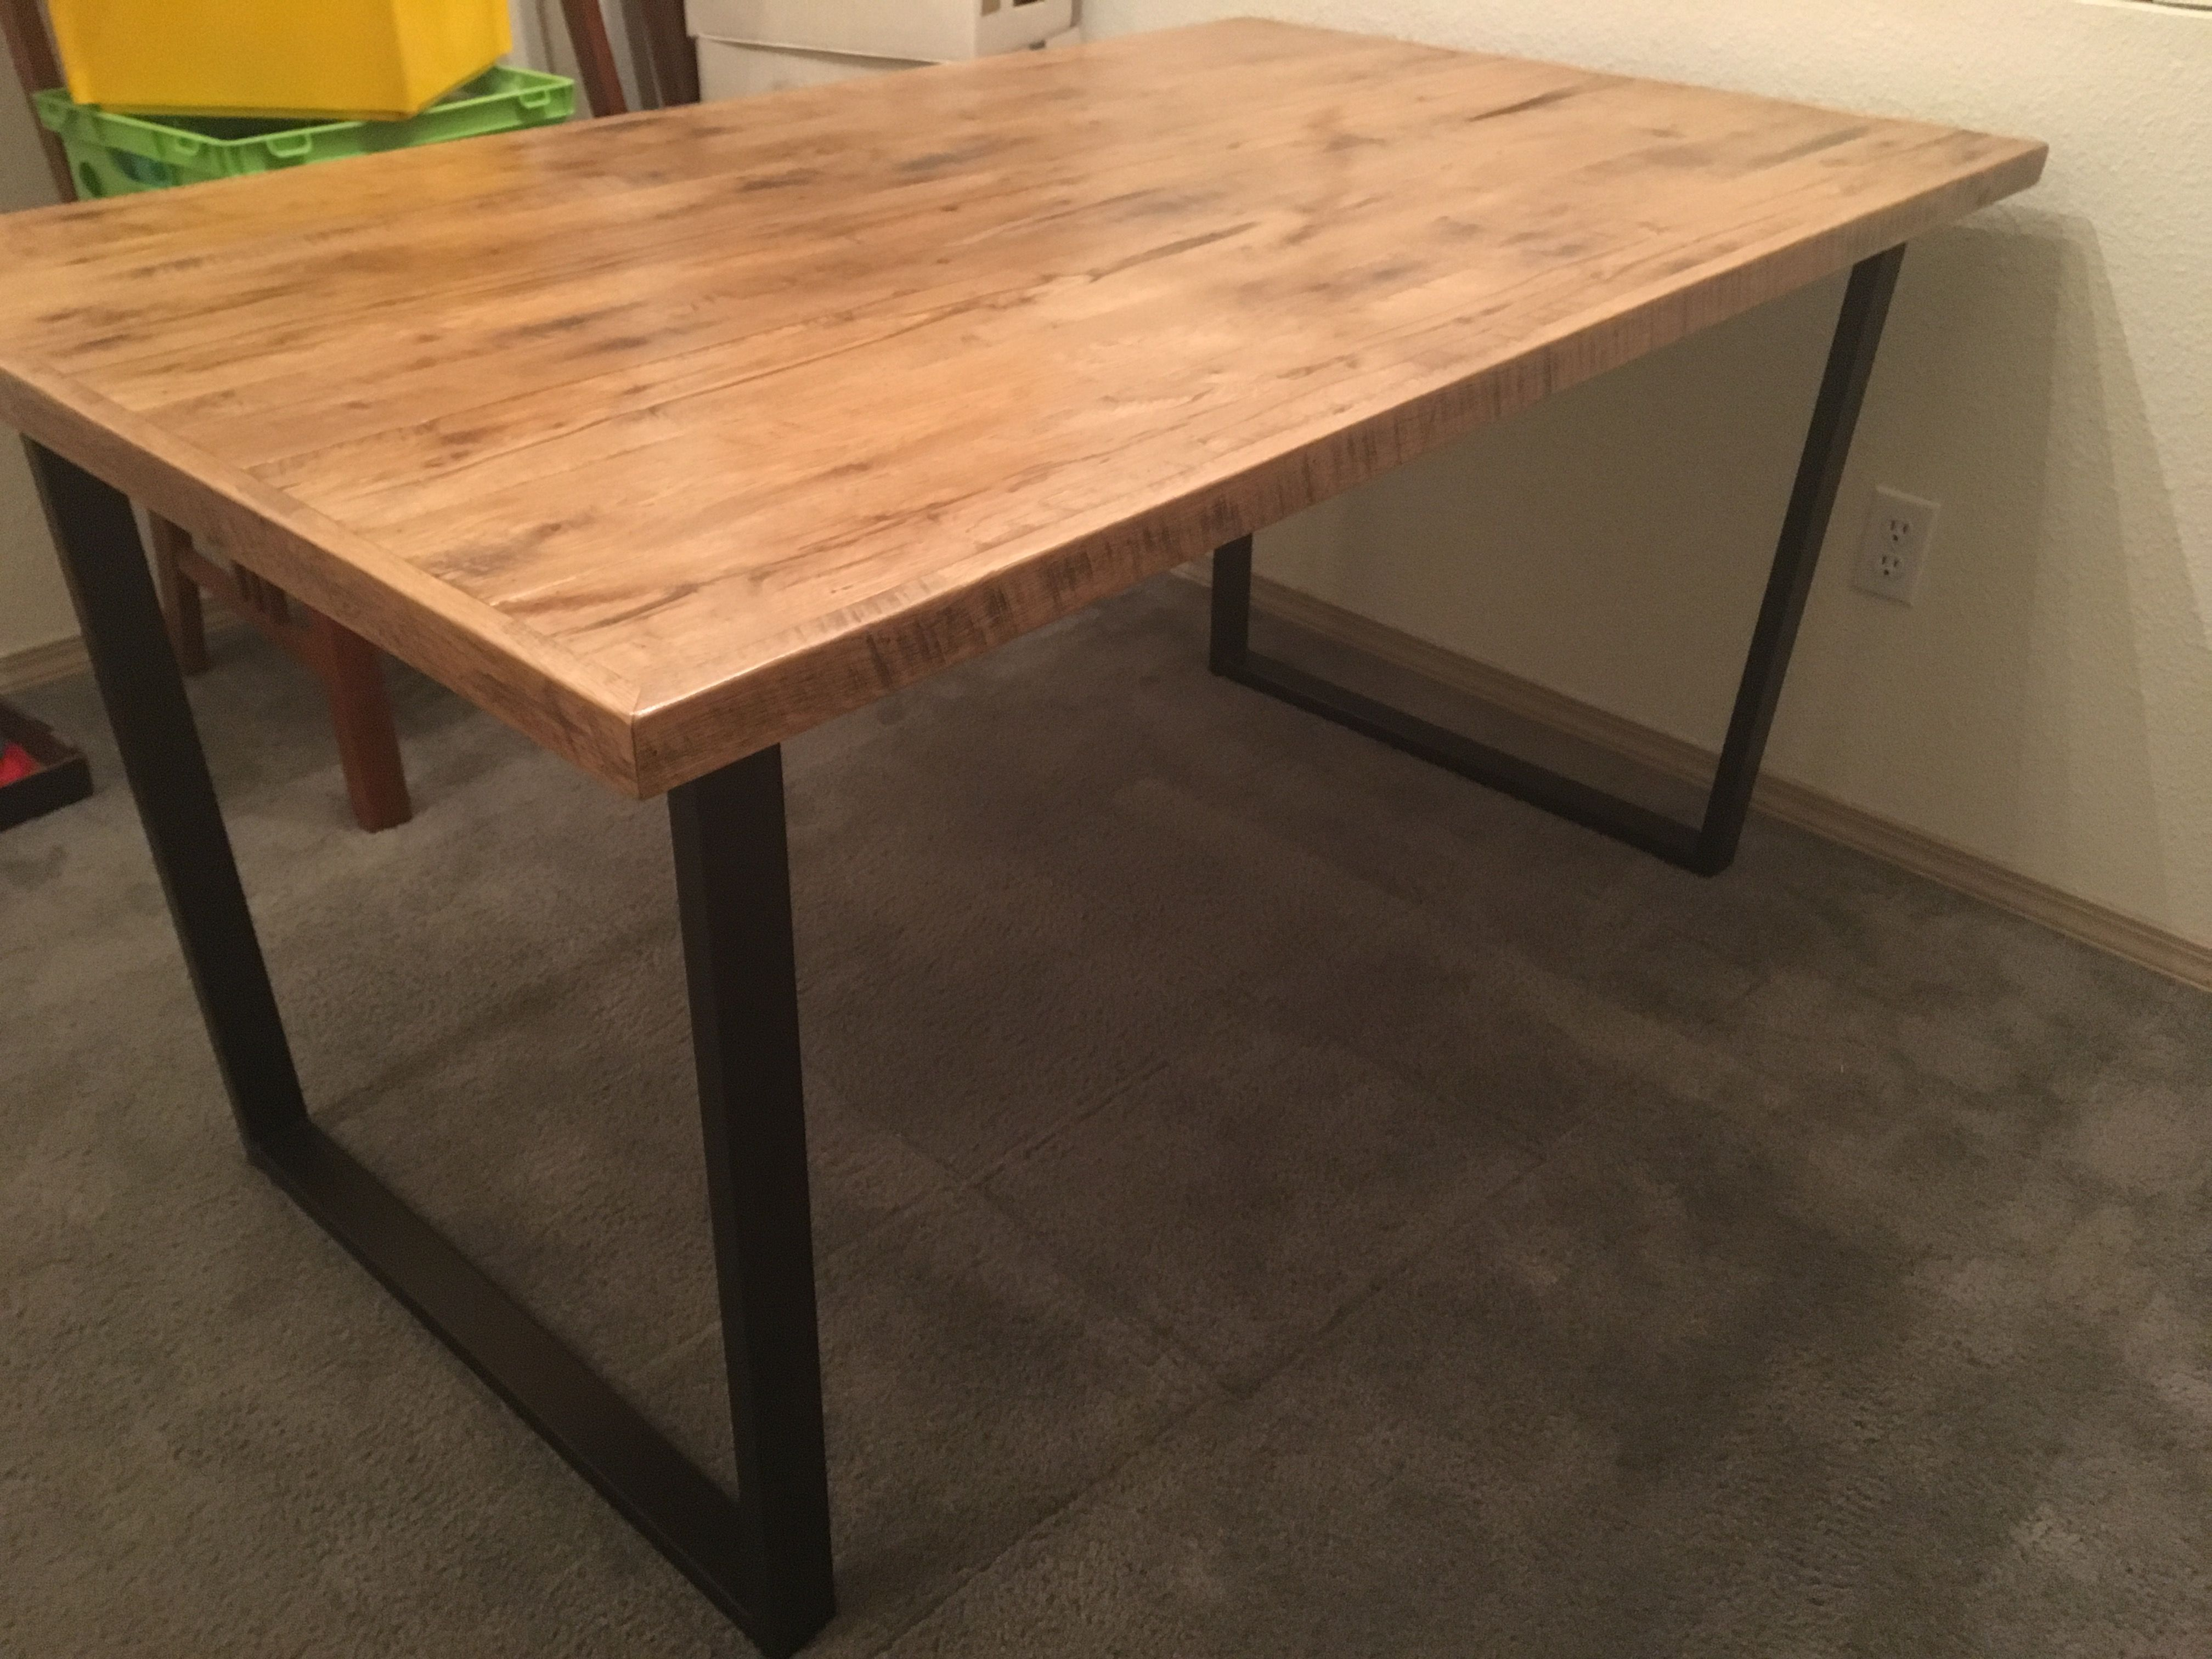 Beautiful Reclaimed White Oak Table Top With Antique Bronze Powder Coated Steel Legs Find Red Miter Furniture On Facebook